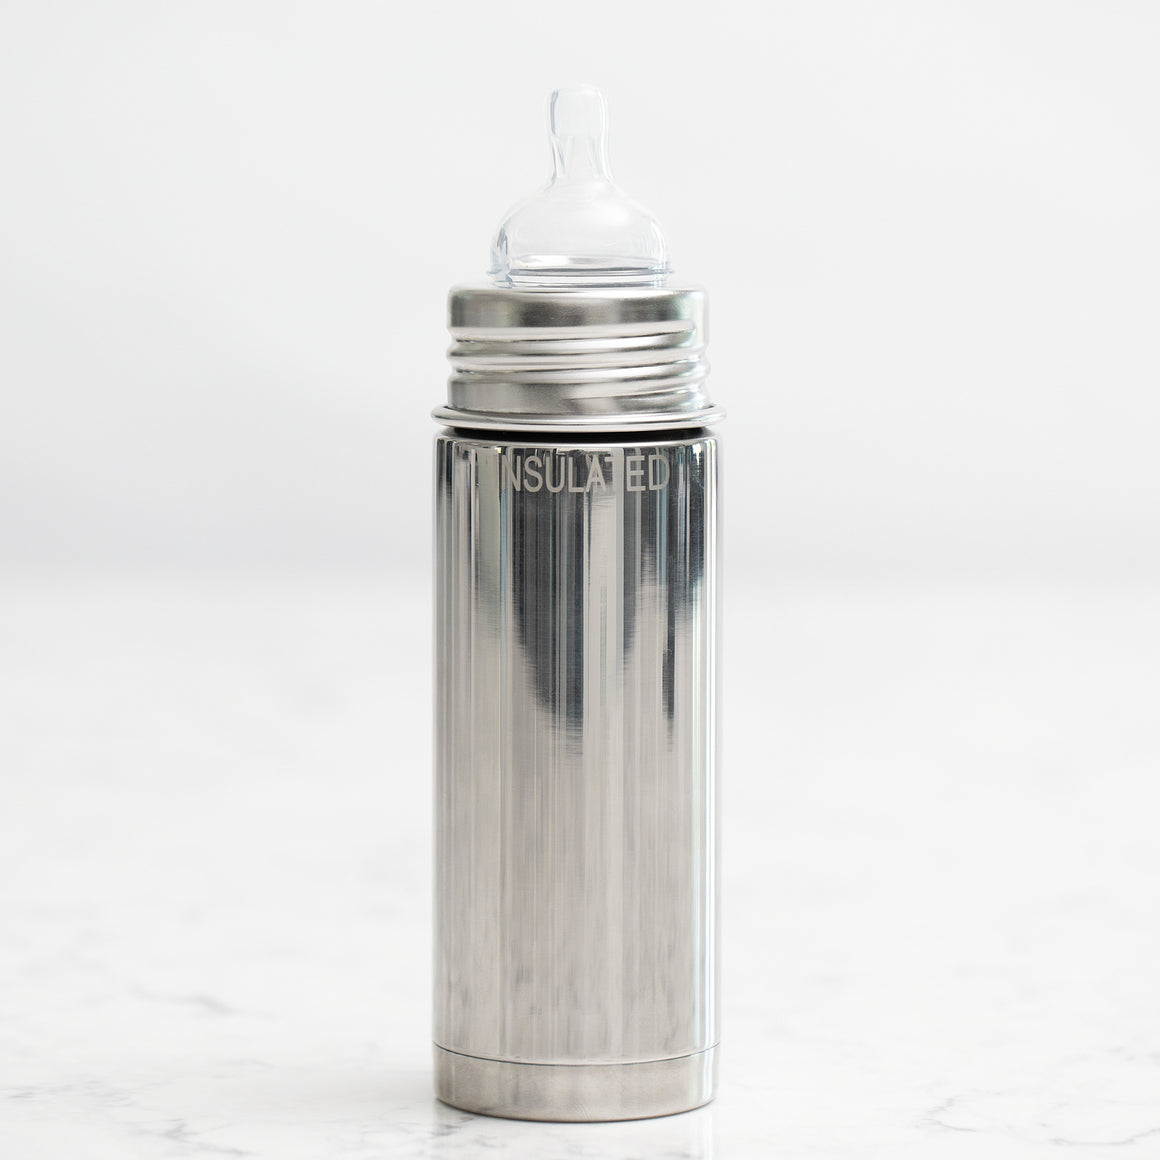 Non-Toxic Stainless Steel Baby Bottle (Insulated)